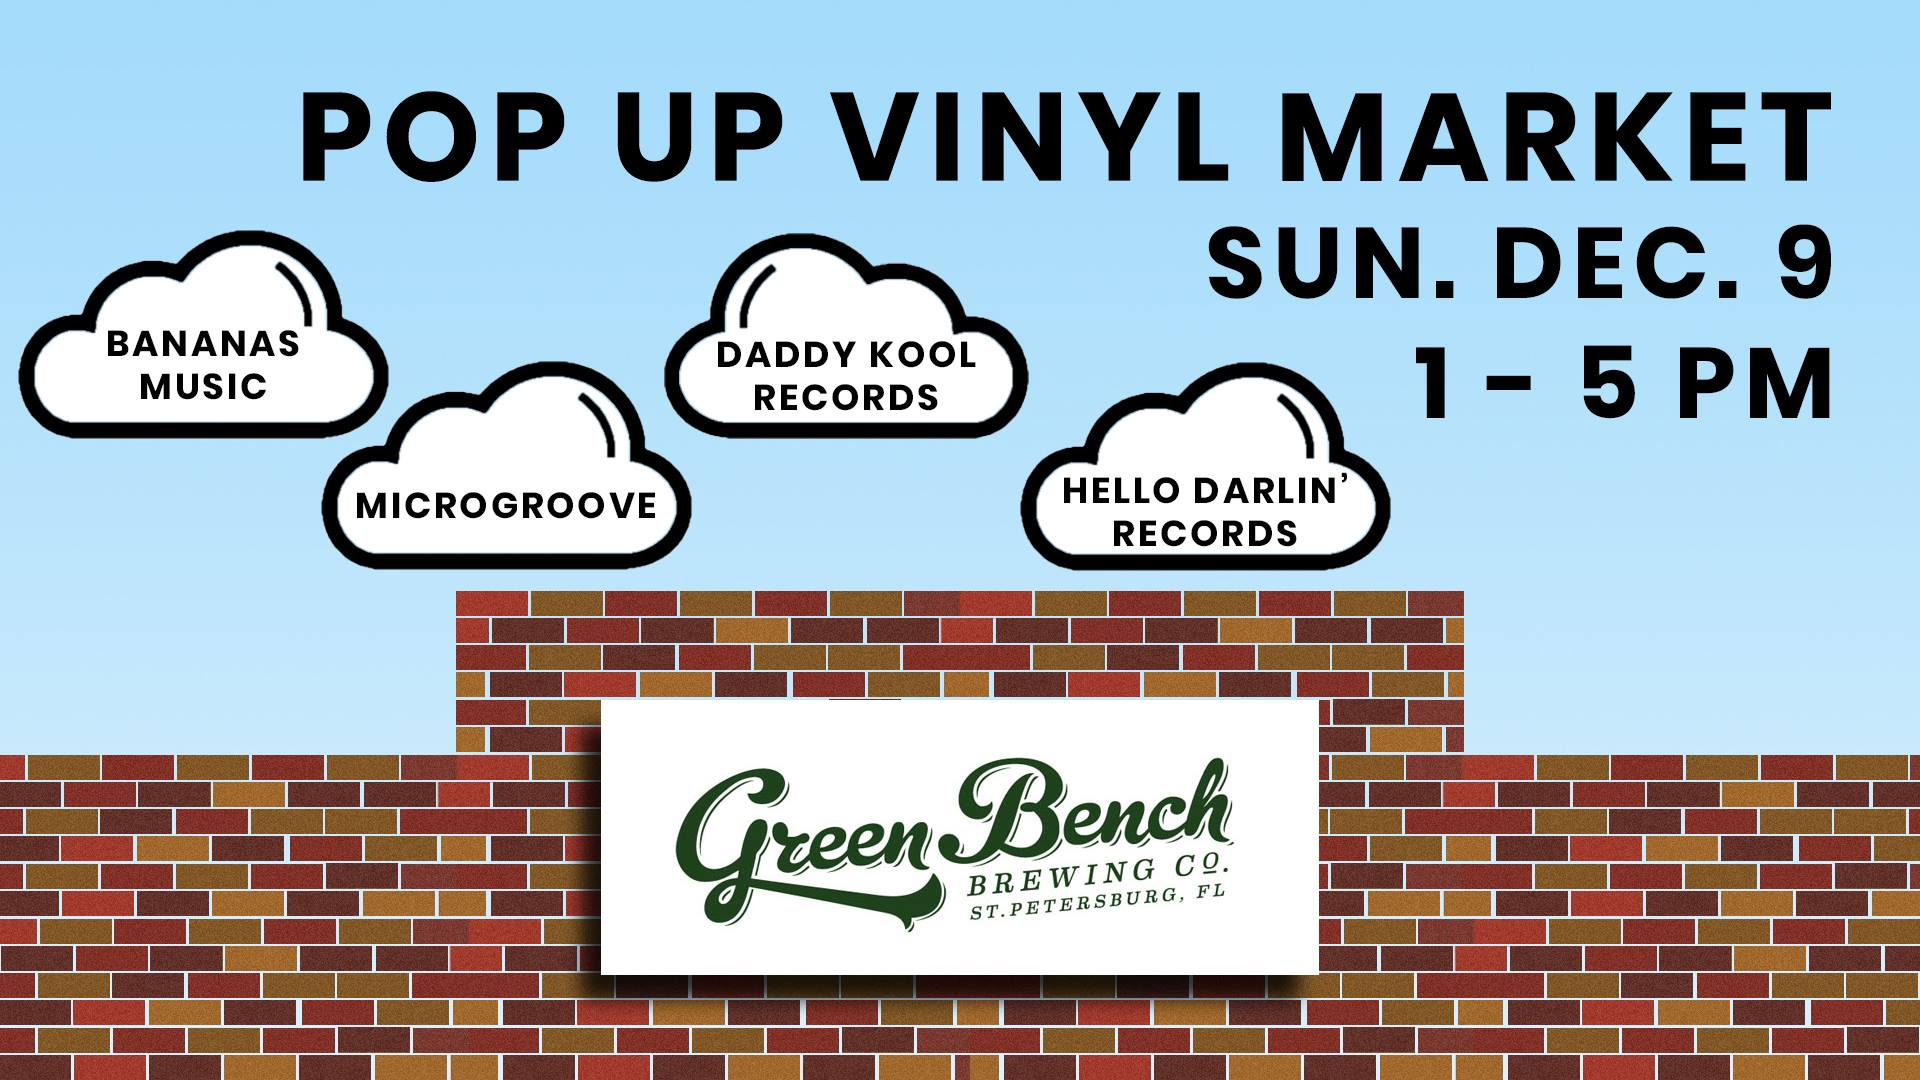 Pop-Up Vinyl Market